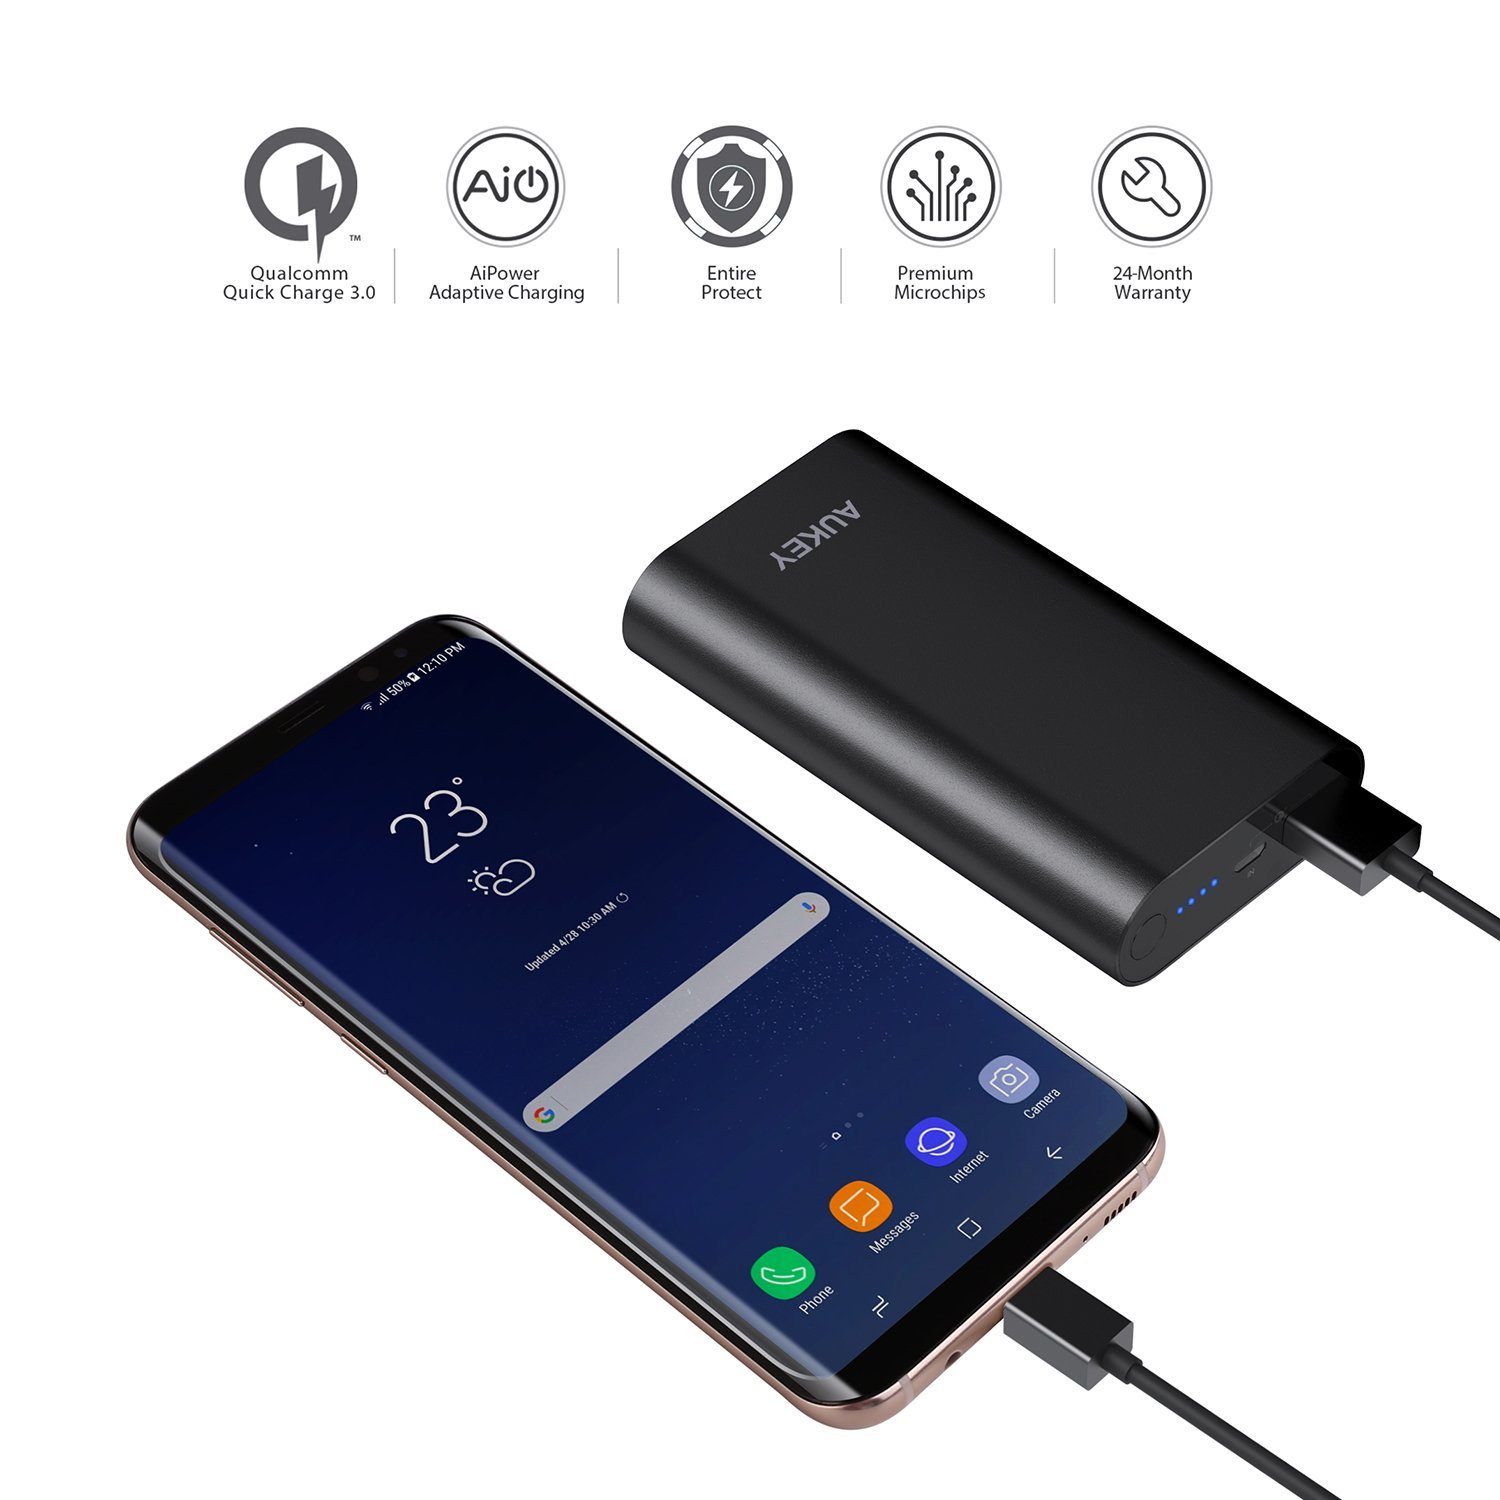 AUKEY 10050mAh Portable Charger with Qualcomm Quick Charge 3 0 for Samsung  Galaxy S8/S8+, LG G6, HTC 10 and More - Black - CHARGE WITH POWER